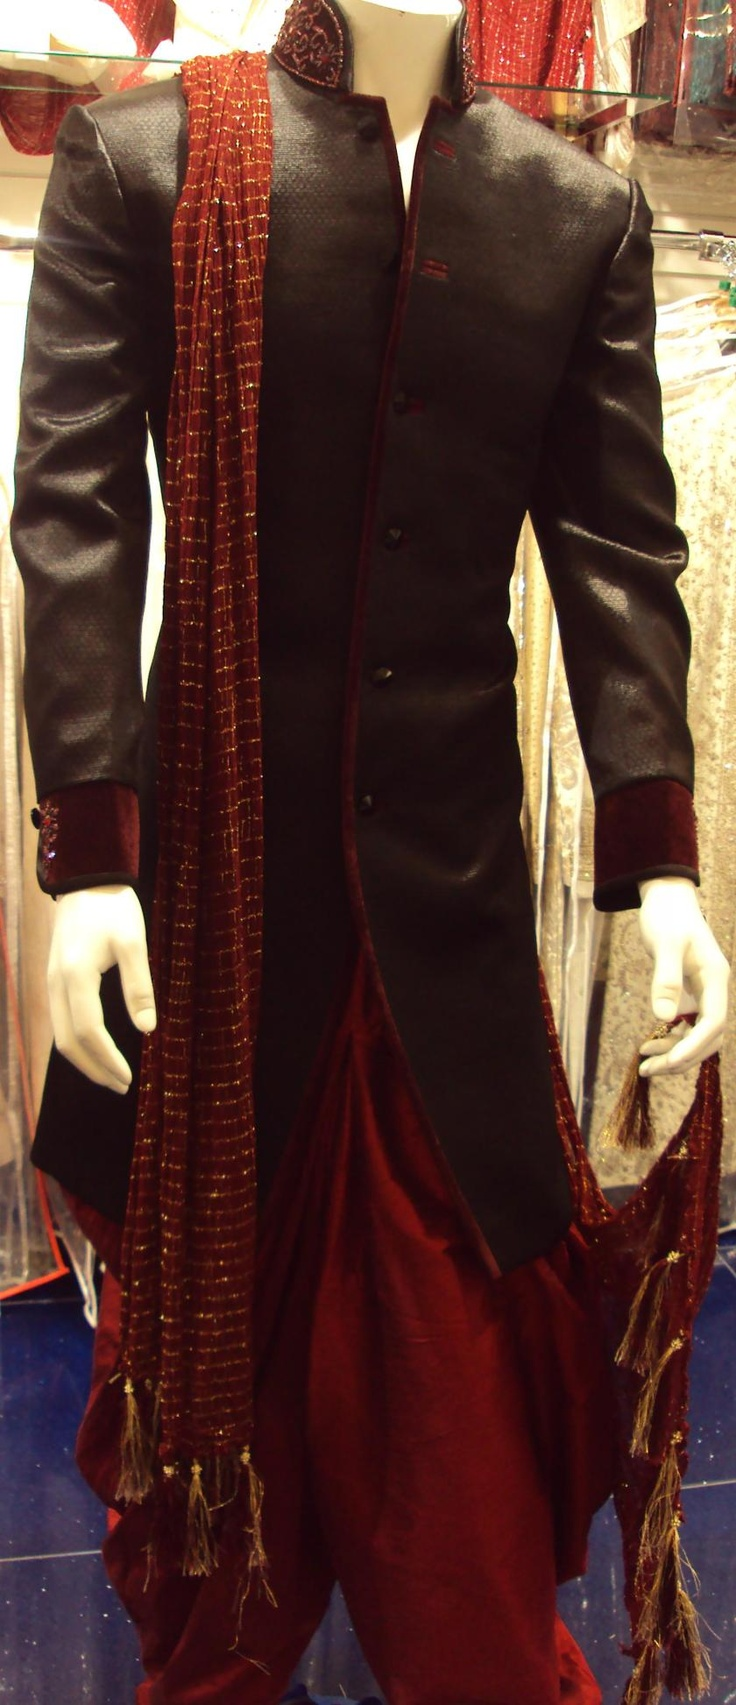 Men's sherwani. Black brockade with maroon piping. I'd wear the sherwani with churidar bottoms instead of the shalwar...Very nice!